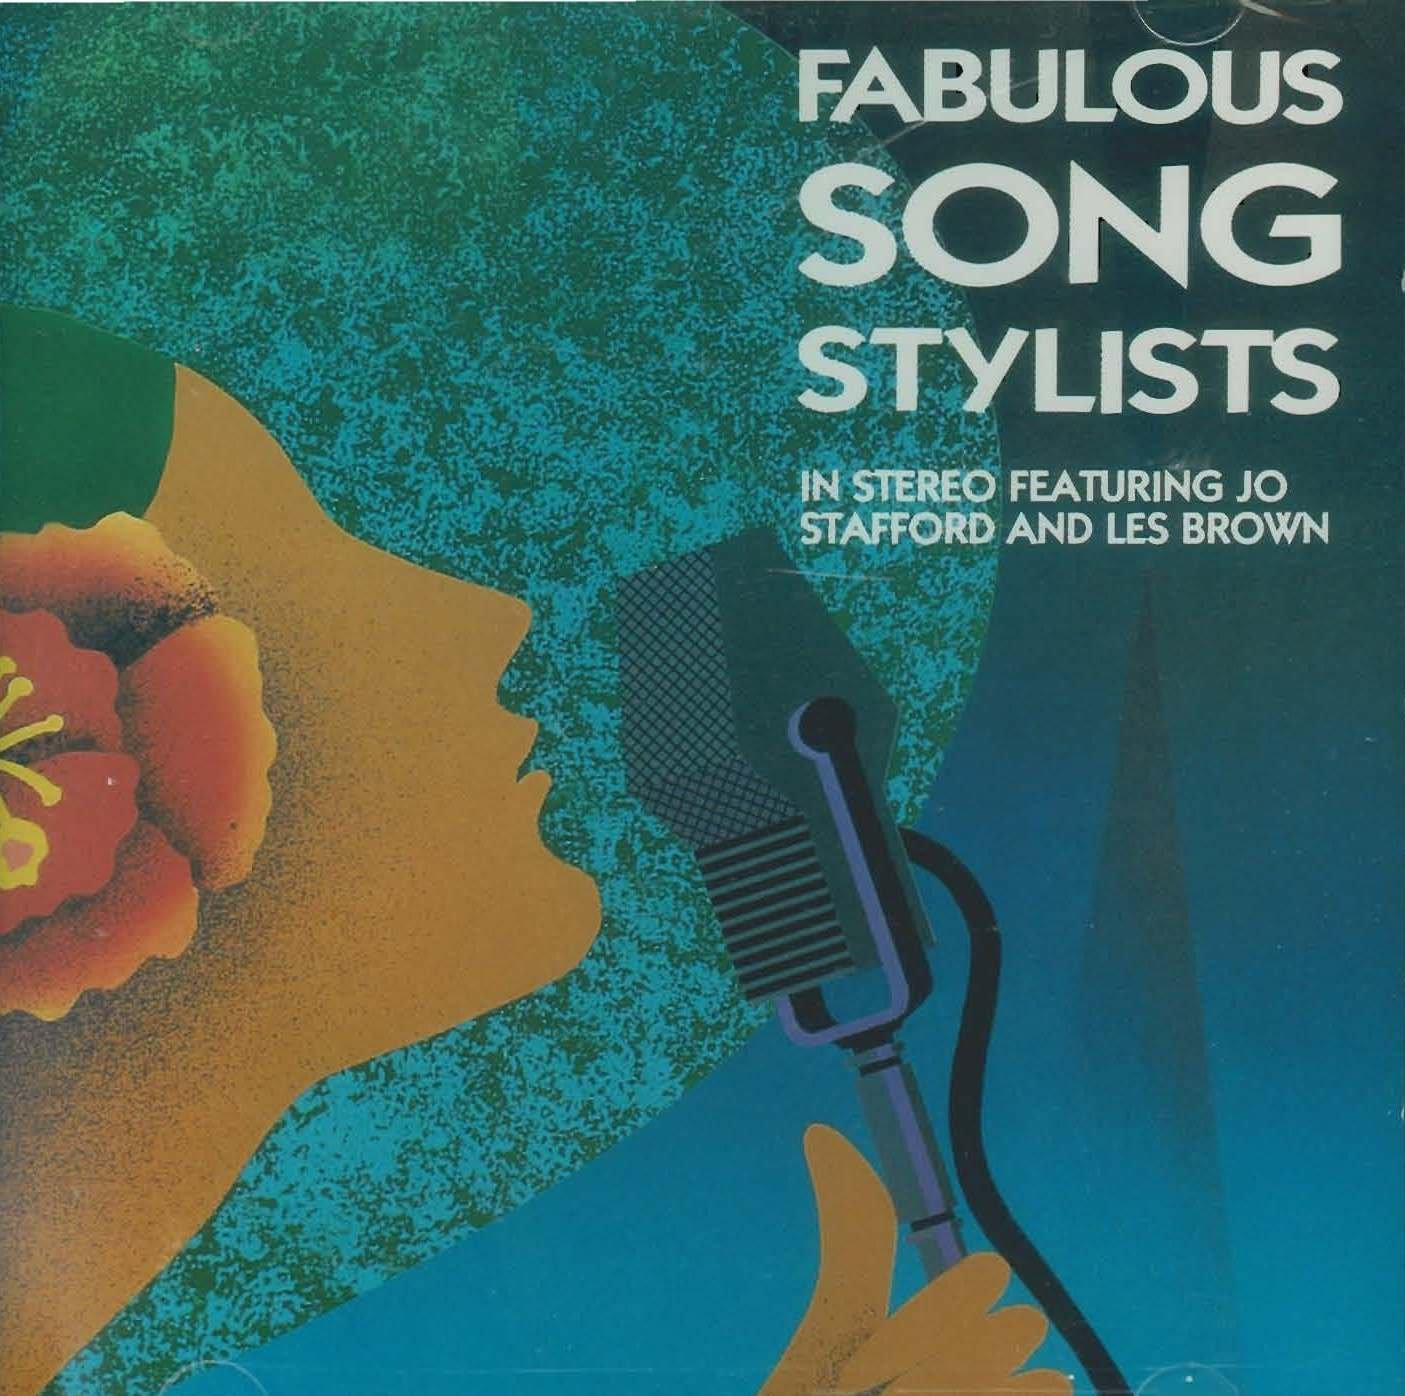 Fabulous Song Stylists